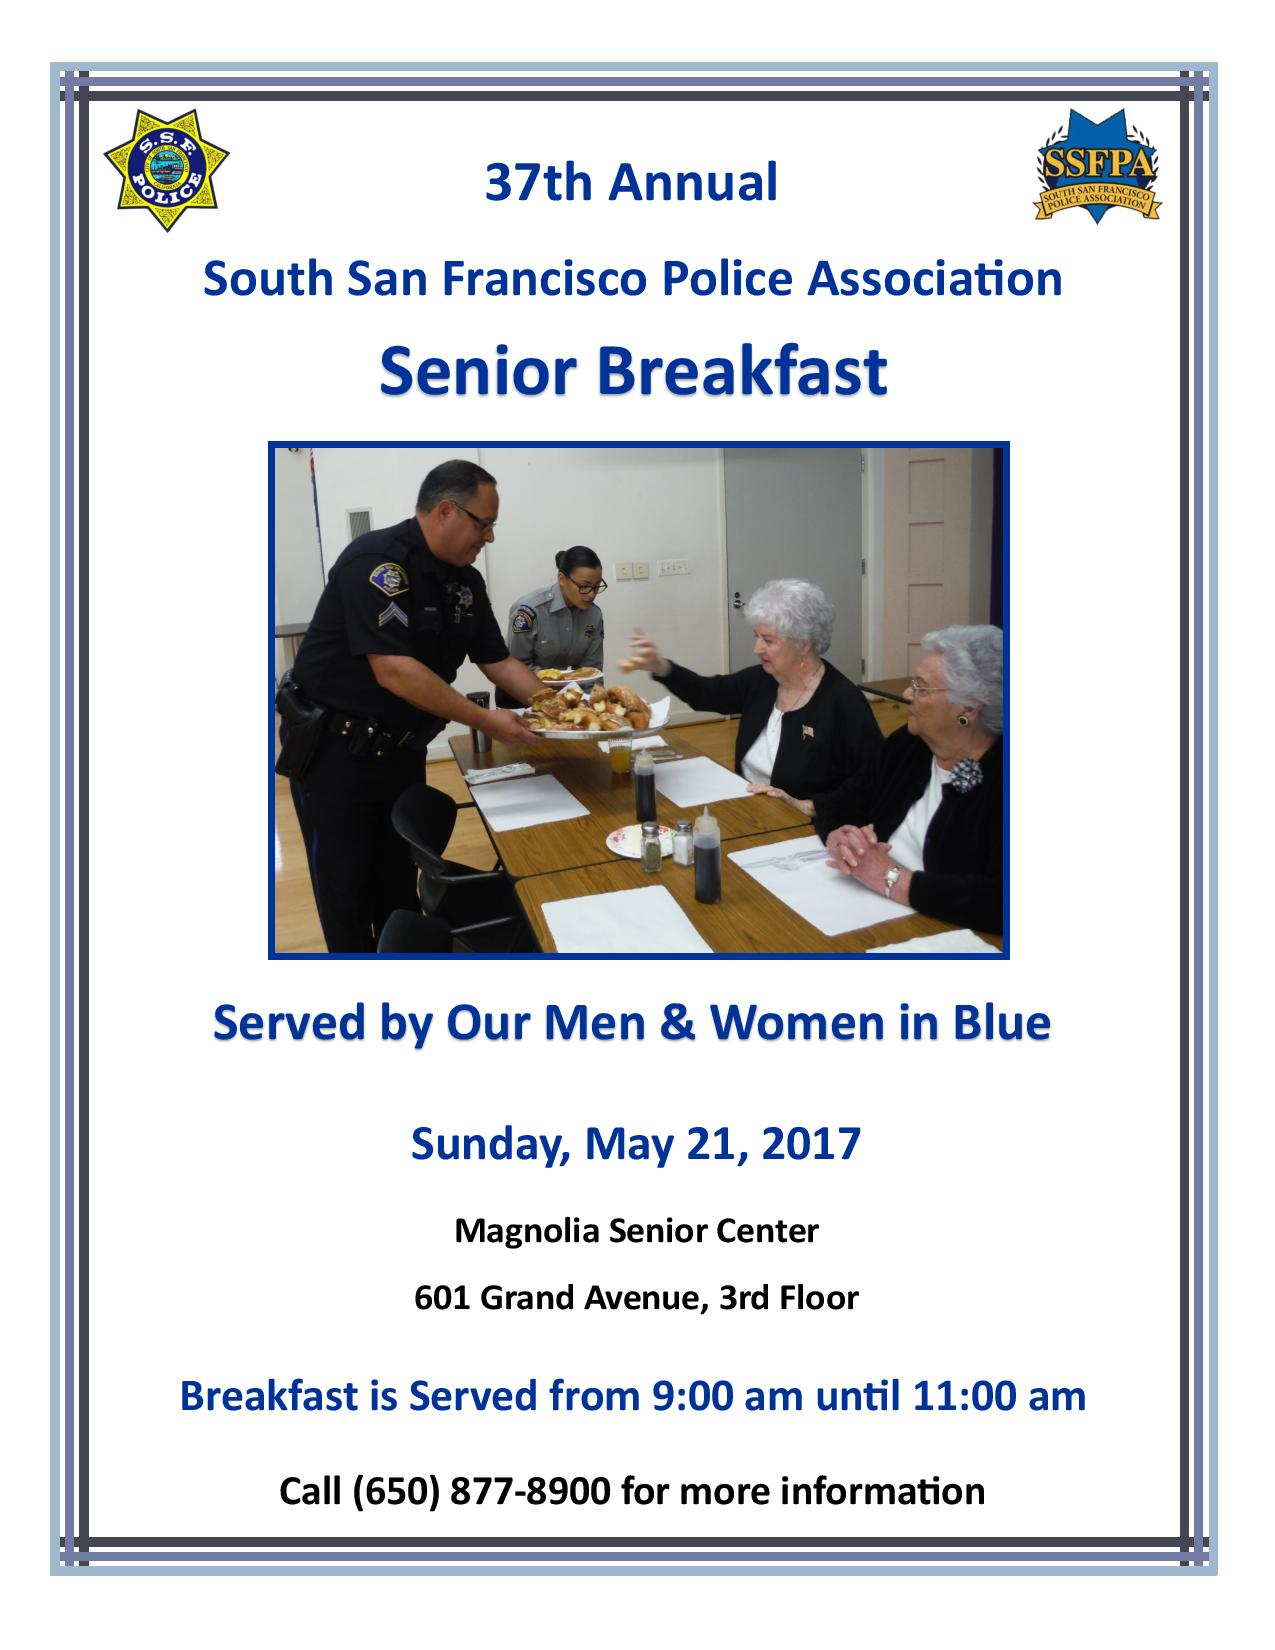 37th Annual South San Francisco Police Association Senior Breakfast Set For Sunday May 21